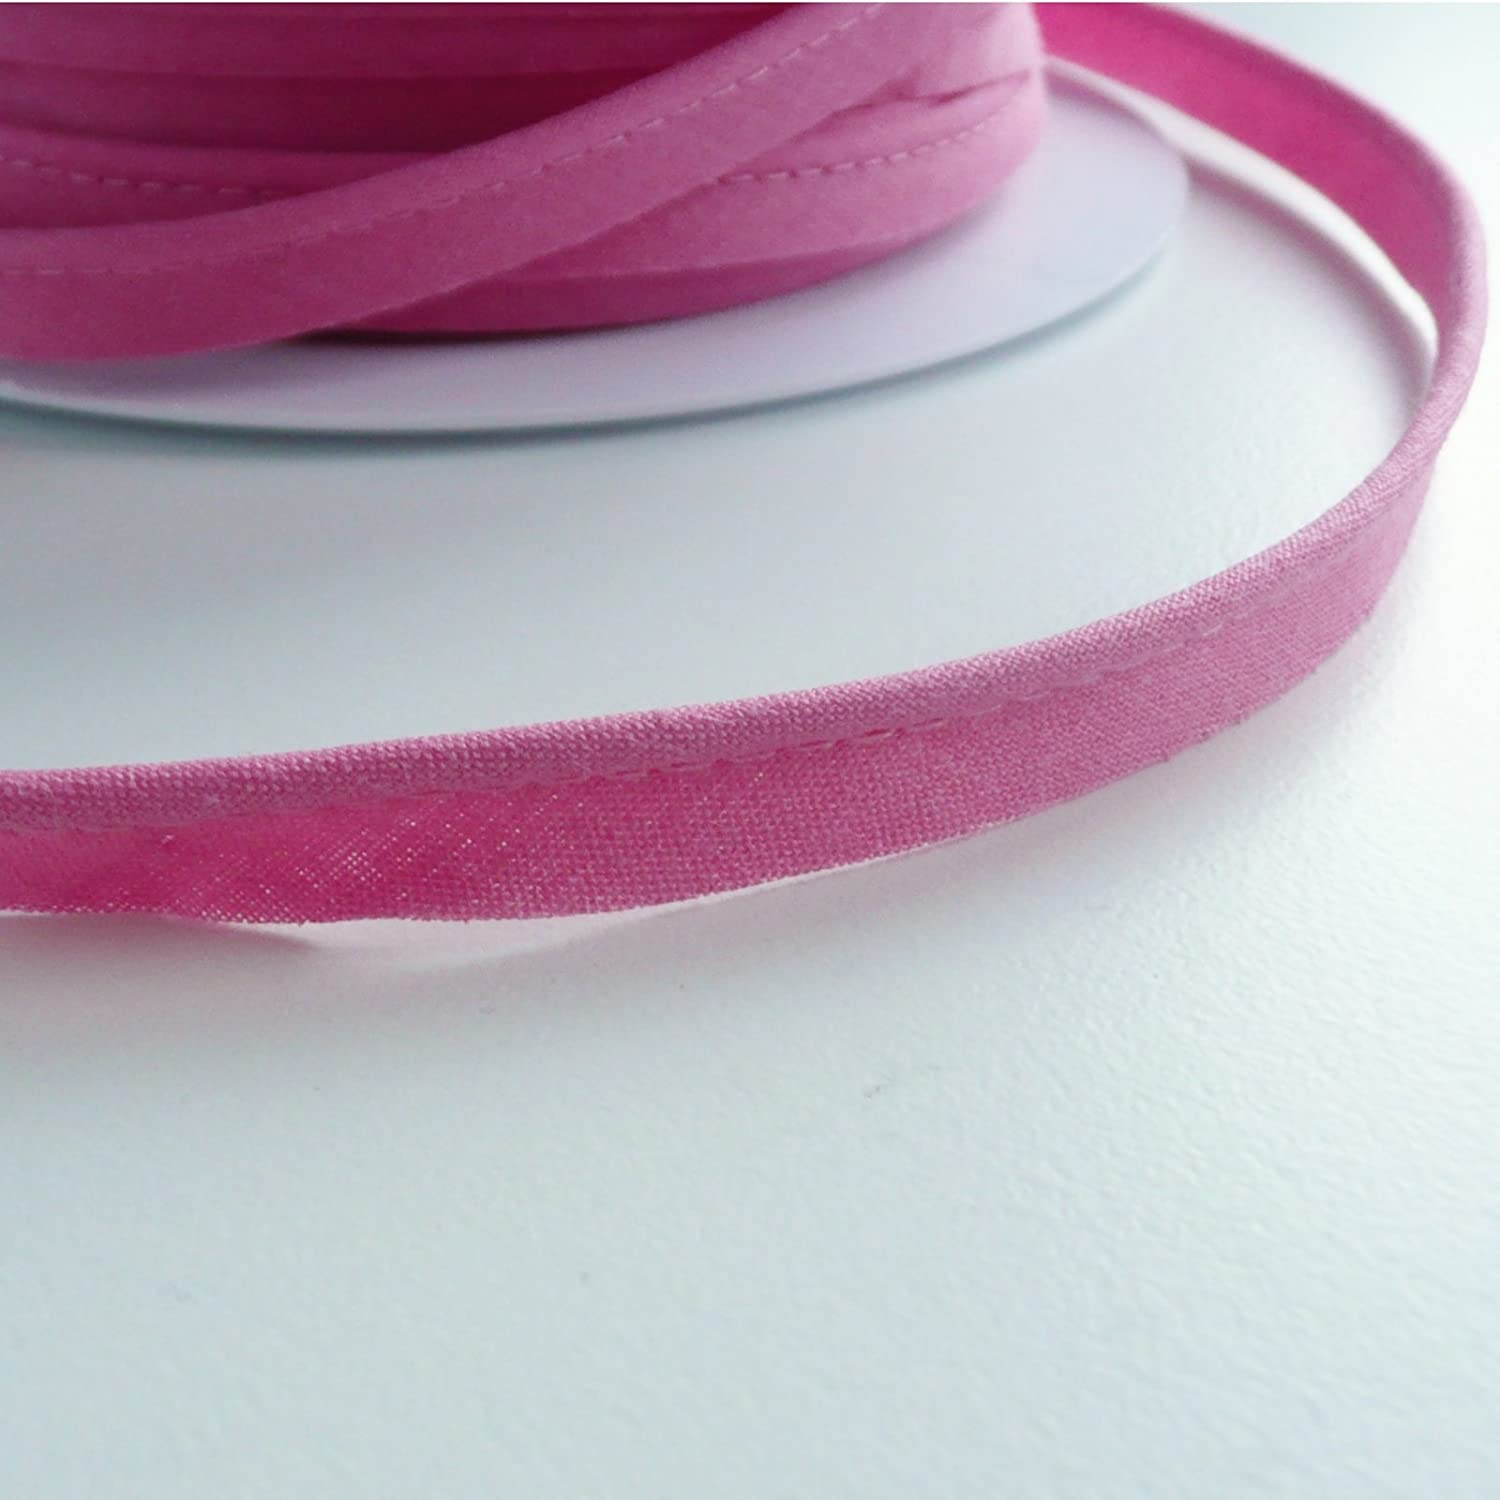 flanged 2mm insert piping cord poly cotton bias cut Many Colours White Sold by the Metre